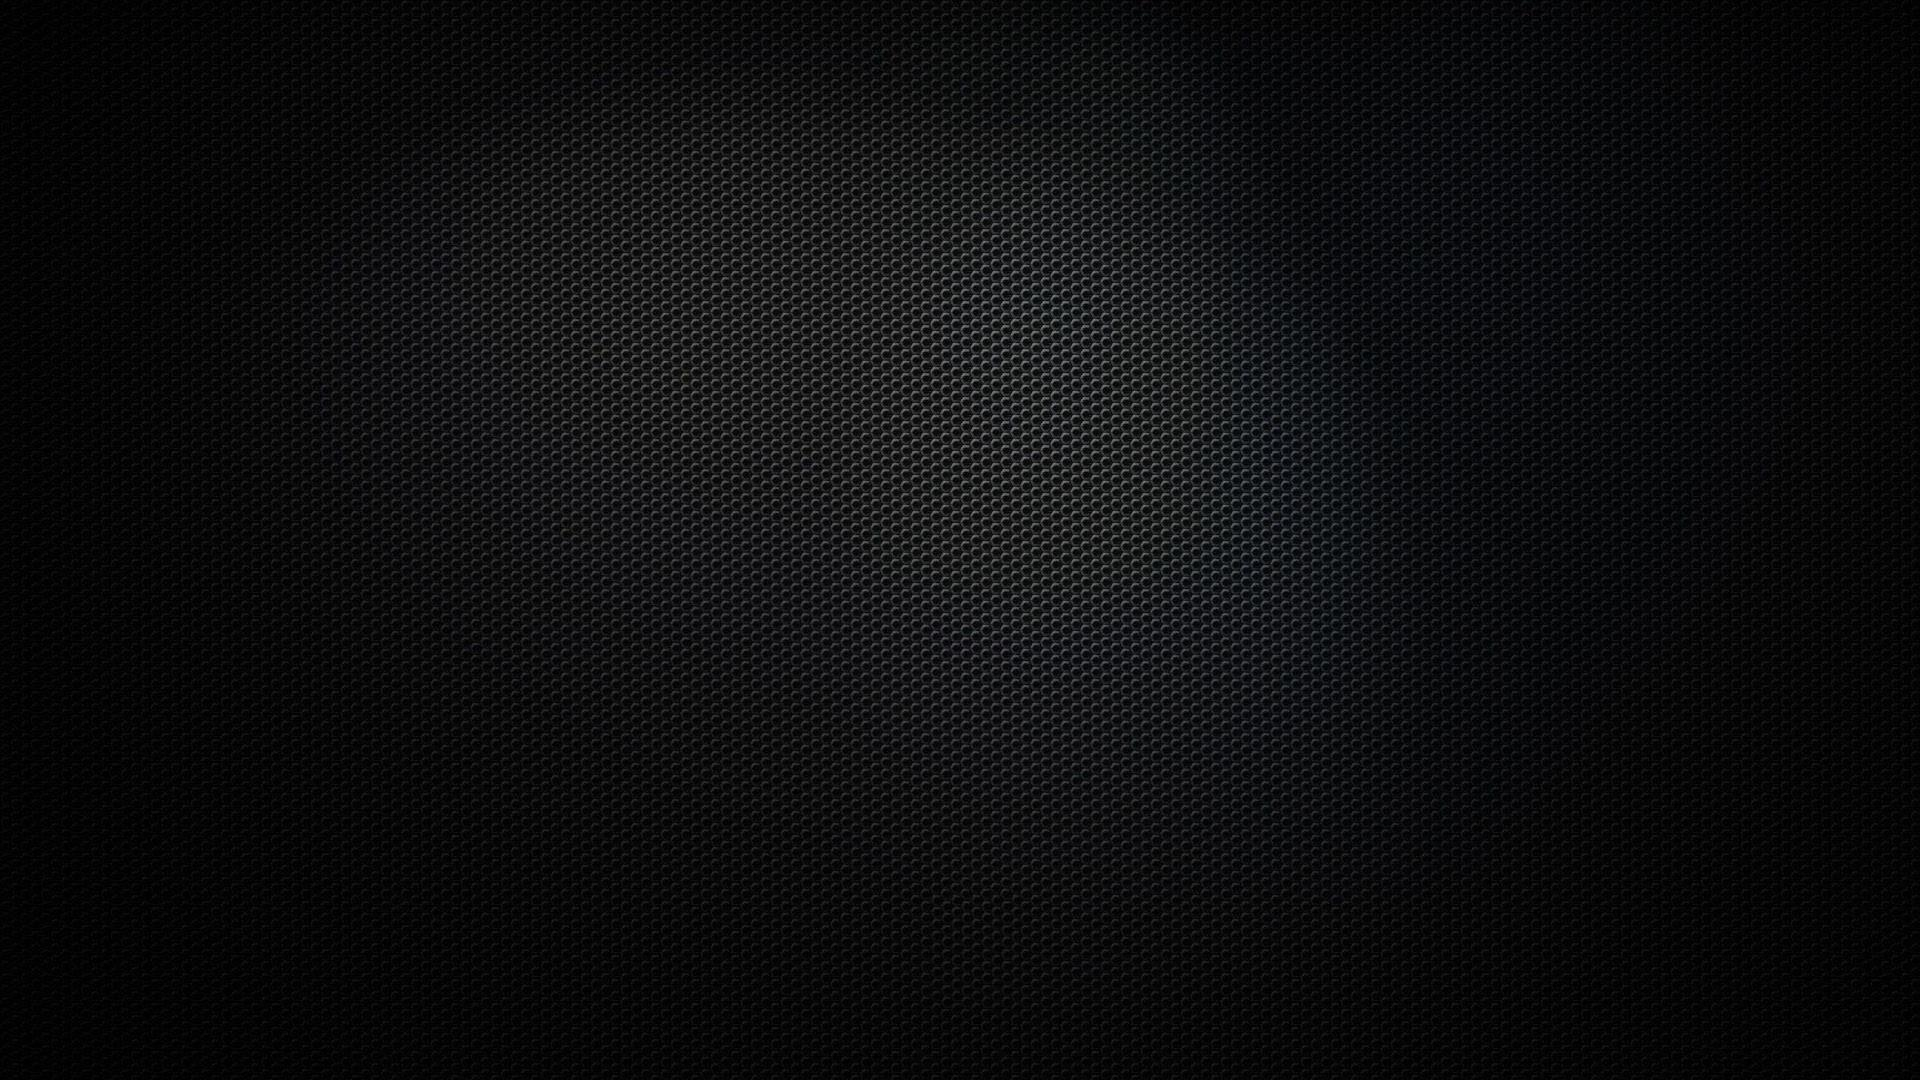 49 Black Abstract Background Wallpaper On Wallpapersafari